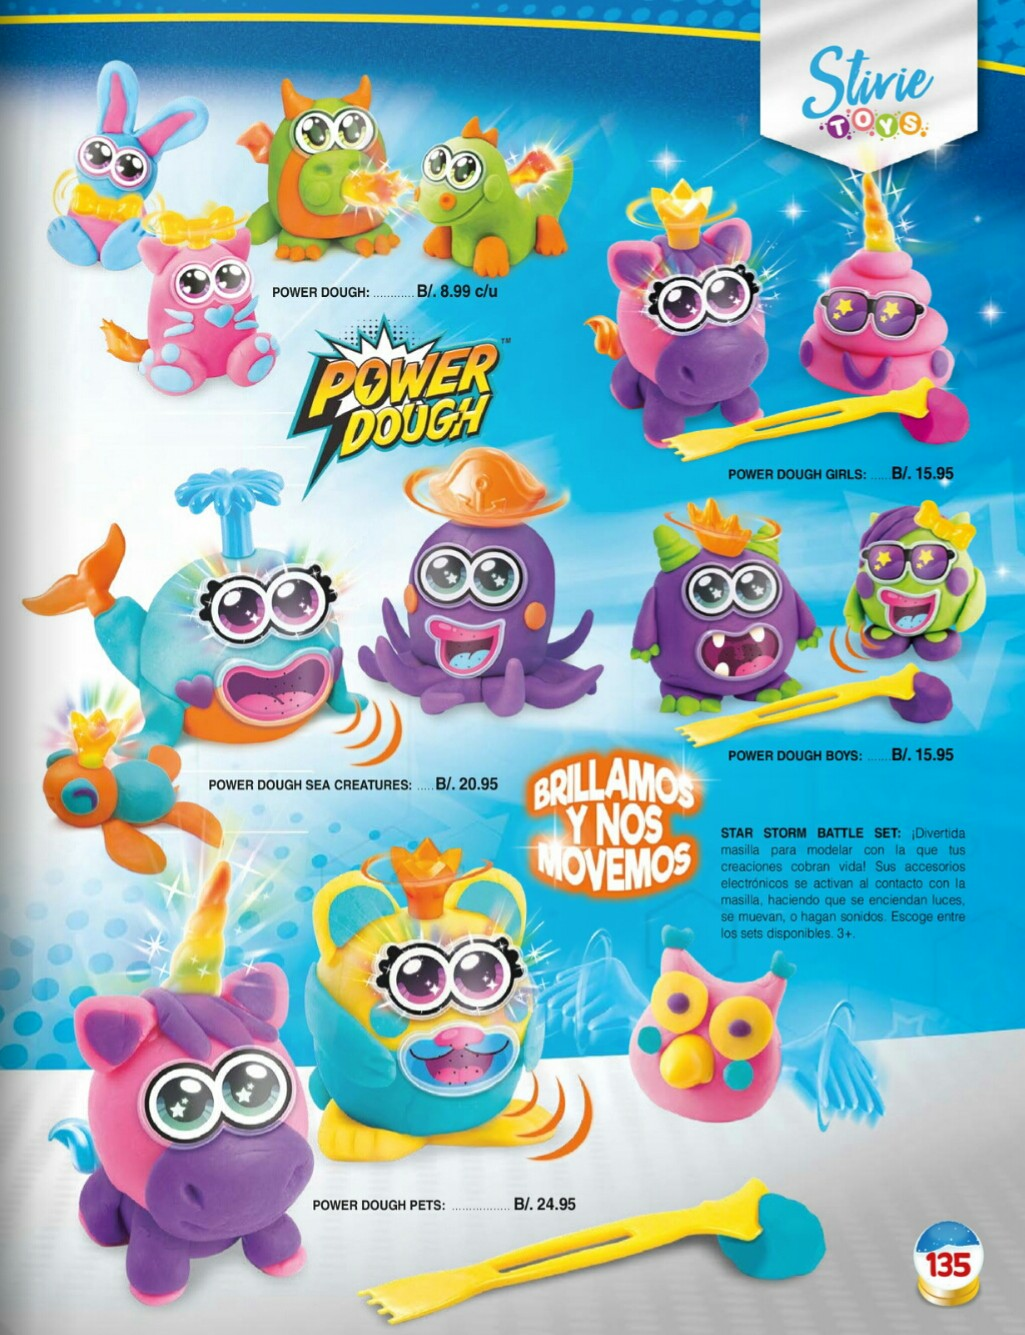 Catalogo juguetes Stivie toys 2018 p135